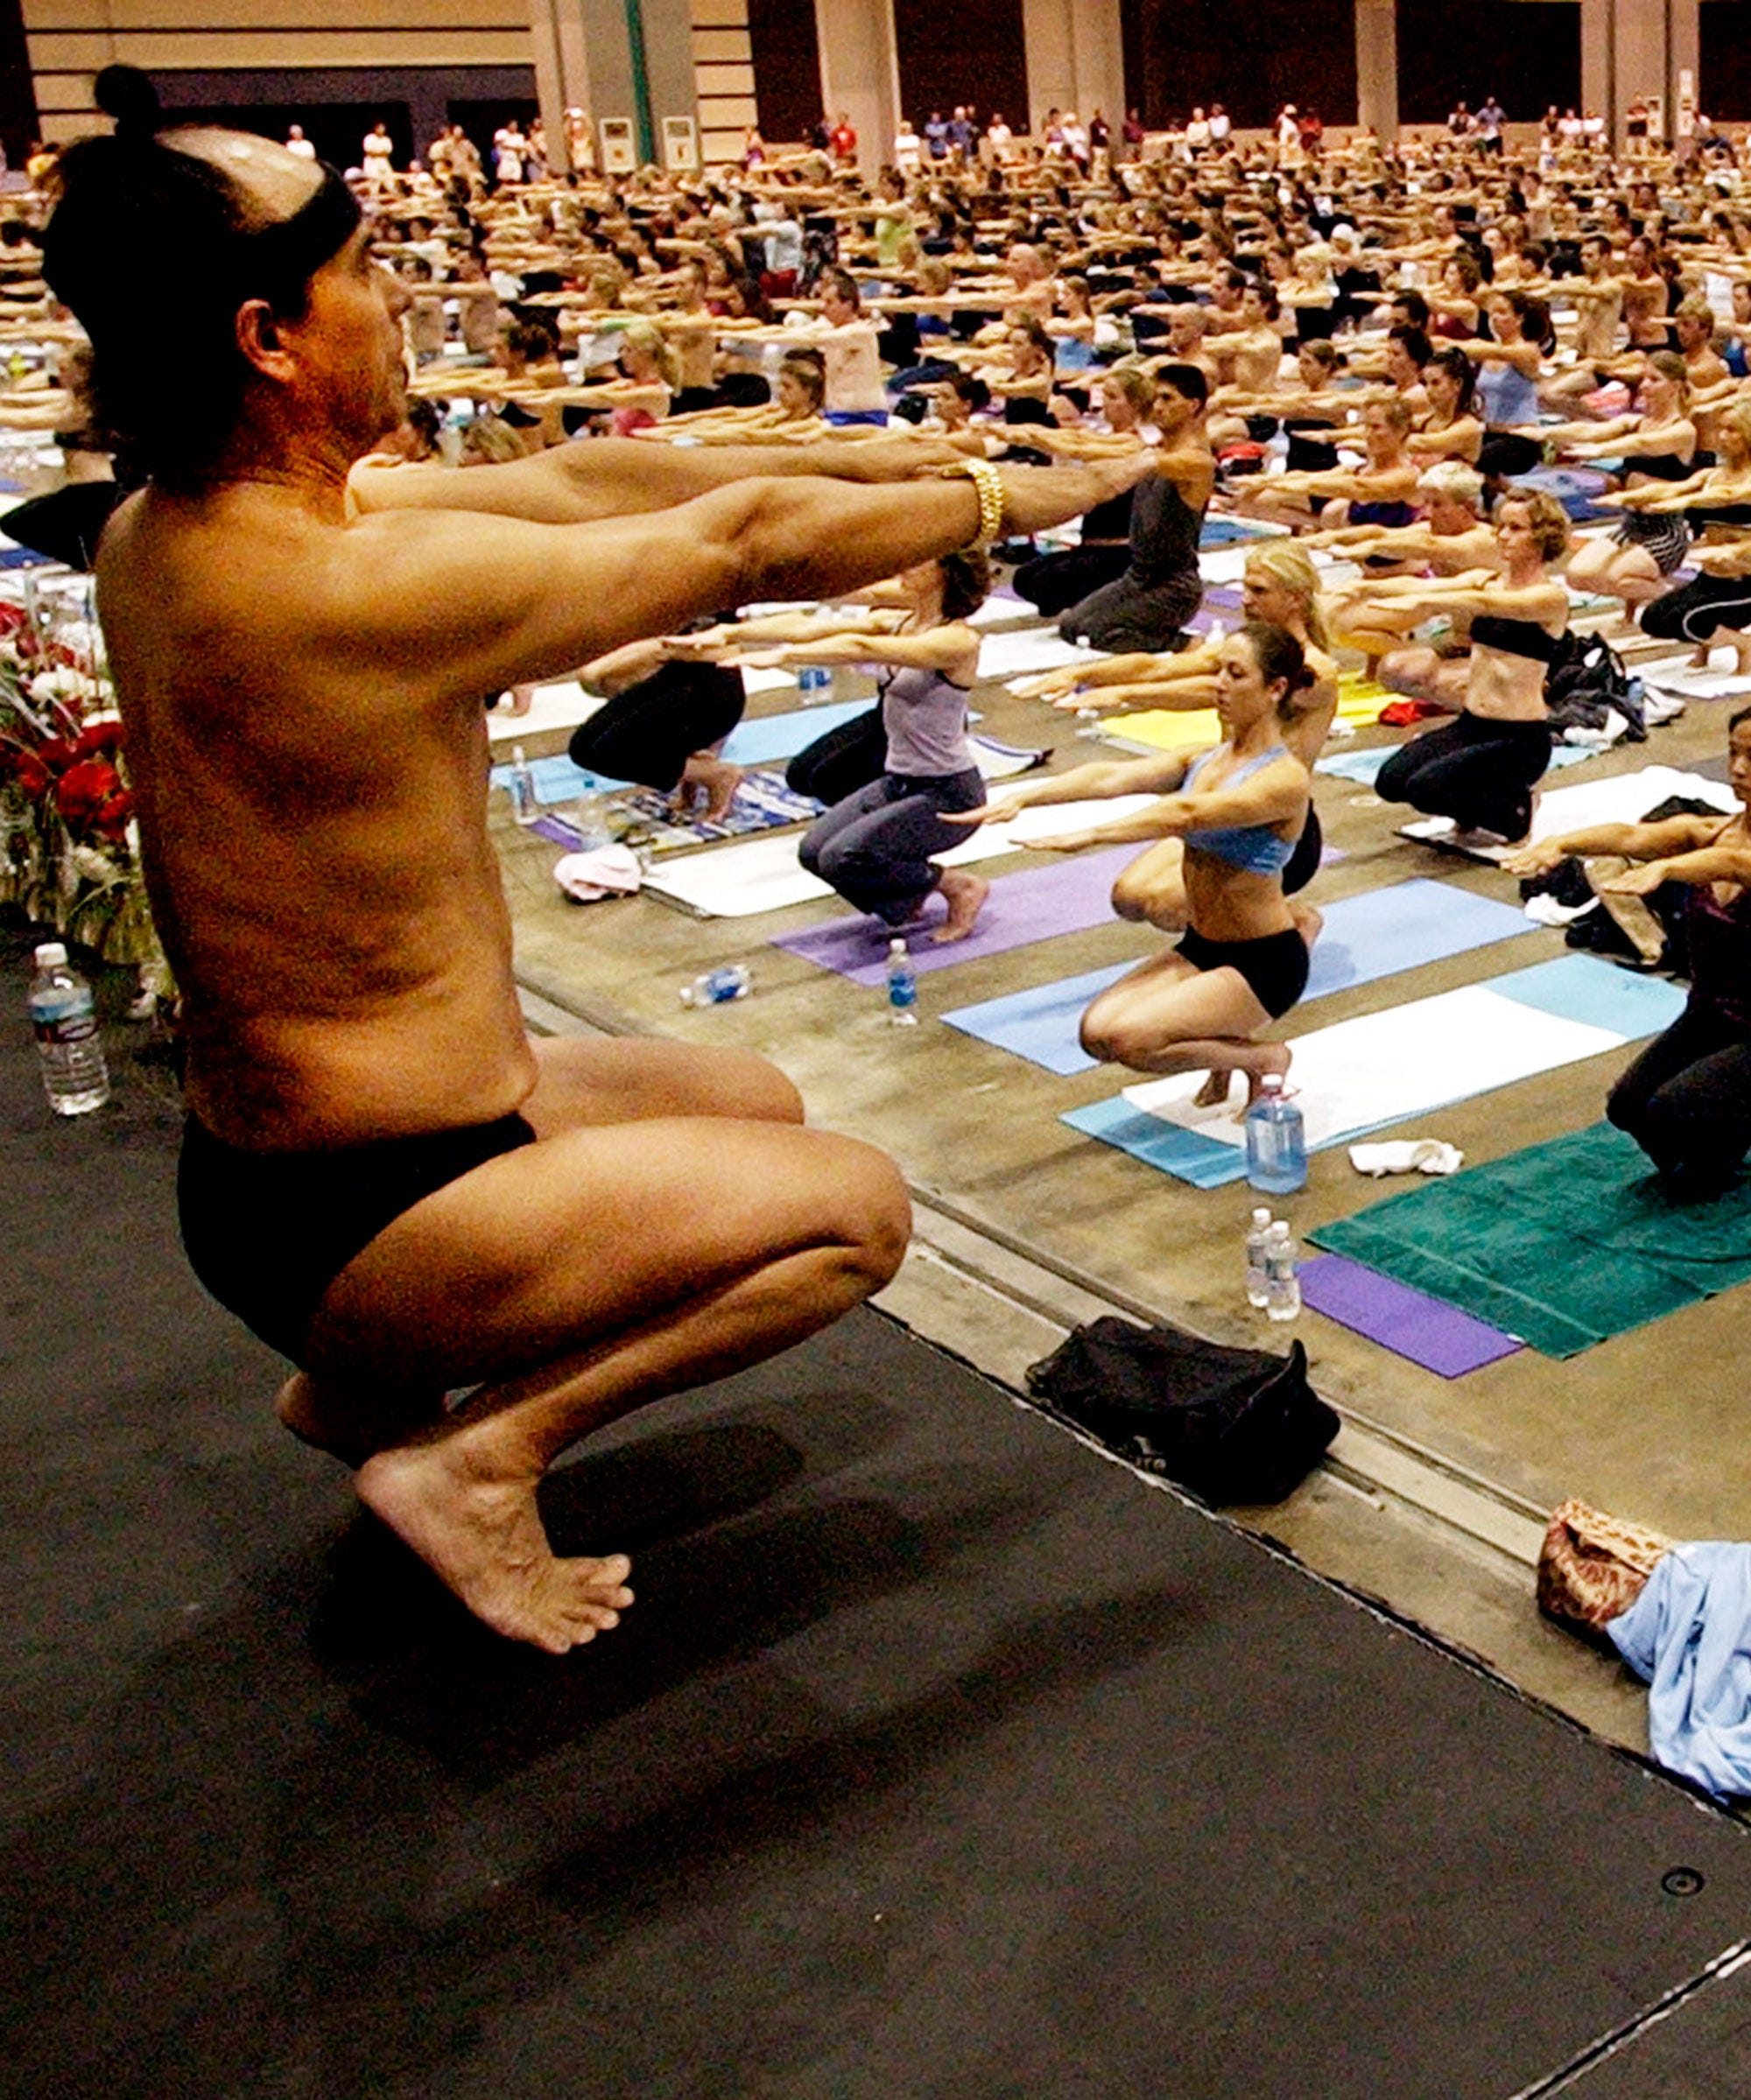 Bikram Yoga Rape Case Accusations Founder Choudhury